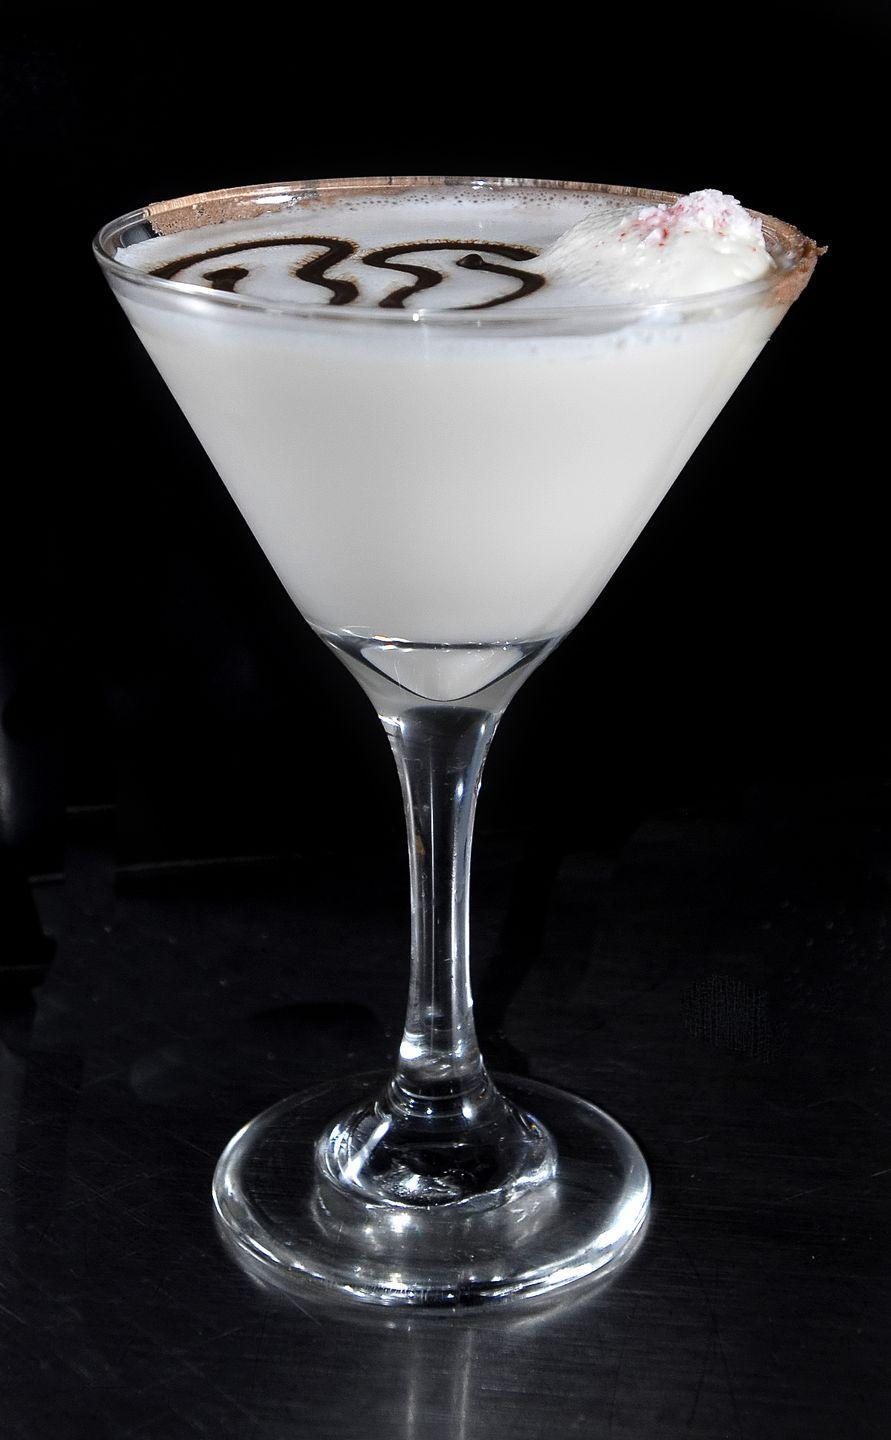 "<p>""I am obsessed with chocolate-peppermint martinis. First, martinis are my favorite drink; they're my medicine of choice. Second, I am a huge chocoholic. Third, I love peppermint. Put them all together, and I am in heaven. Another perfect way to make the holidays special!"" – <a href=""http://davidmeister.com/"" rel=""nofollow noopener"" target=""_blank"" data-ylk=""slk:David Meister"" class=""link rapid-noclick-resp"">David Meister</a>, fashion designer.</p><p><strong>David's Martini Recipe</strong></p><p><strong>Ingredients: </strong><br>2 ounces vodka</p><p>1 ounce white crème de menthe</p><p>1 1/2 ounces white chocolate liqueur</p><p>1 ounce peppermint liqueur</p><p>2 small peppermint patty candies, for garnish <br></p><p><strong>Directions: </strong><br>Combine vodka, crème de menthe, chocolate liqueur, and peppermint liqueur. Shake well. Pour into a martini glass. Garnish with peppermint patty candies.</p>"